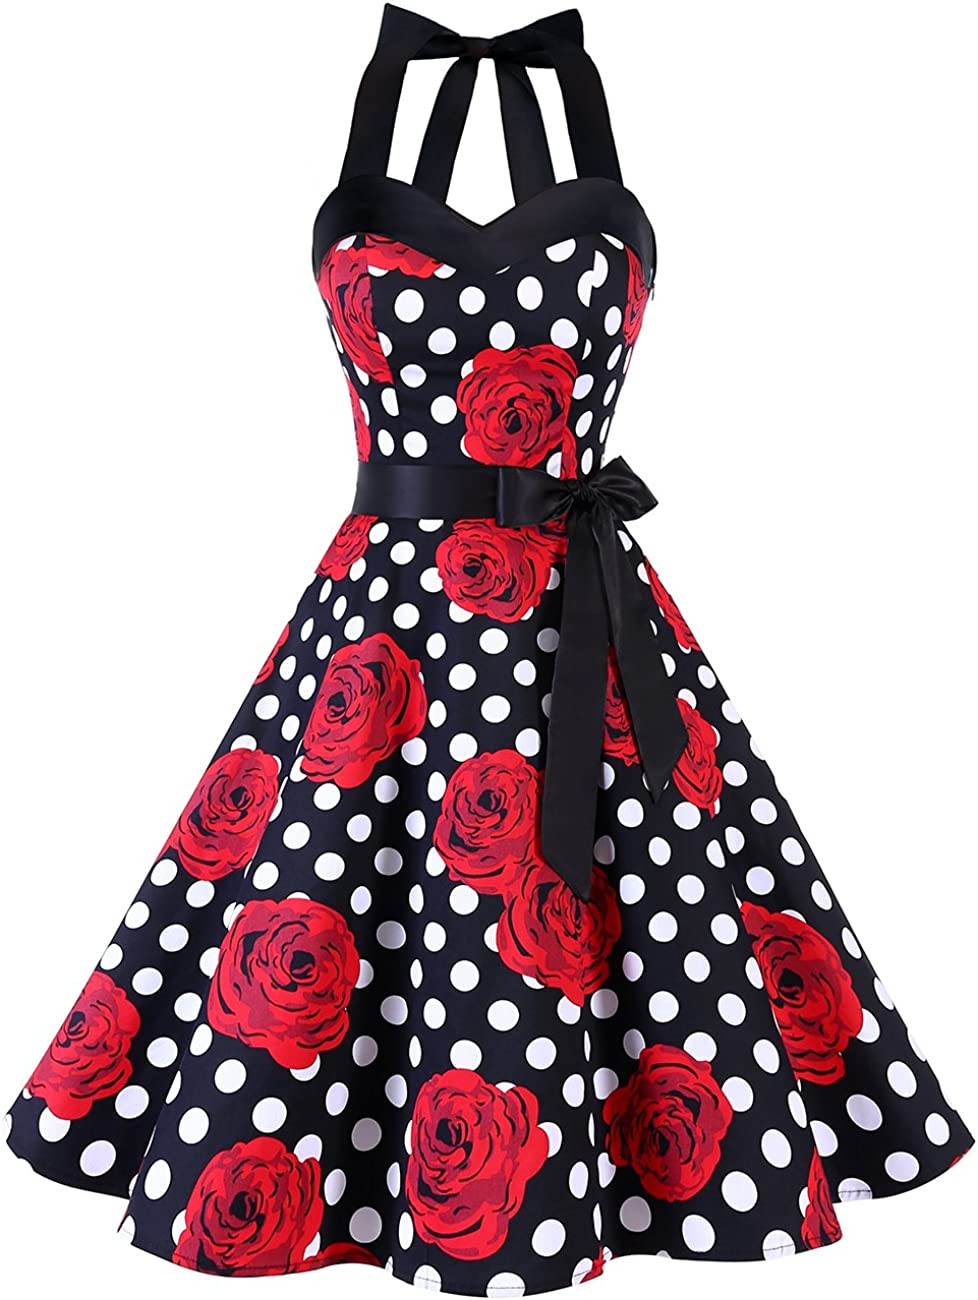 TALLA M-36/38/40. Dresstells® Halter 50s Rockabilly Polka Dots Audrey Dress Retro Cocktail Dress Black Red Rose Dot M-36/38/40